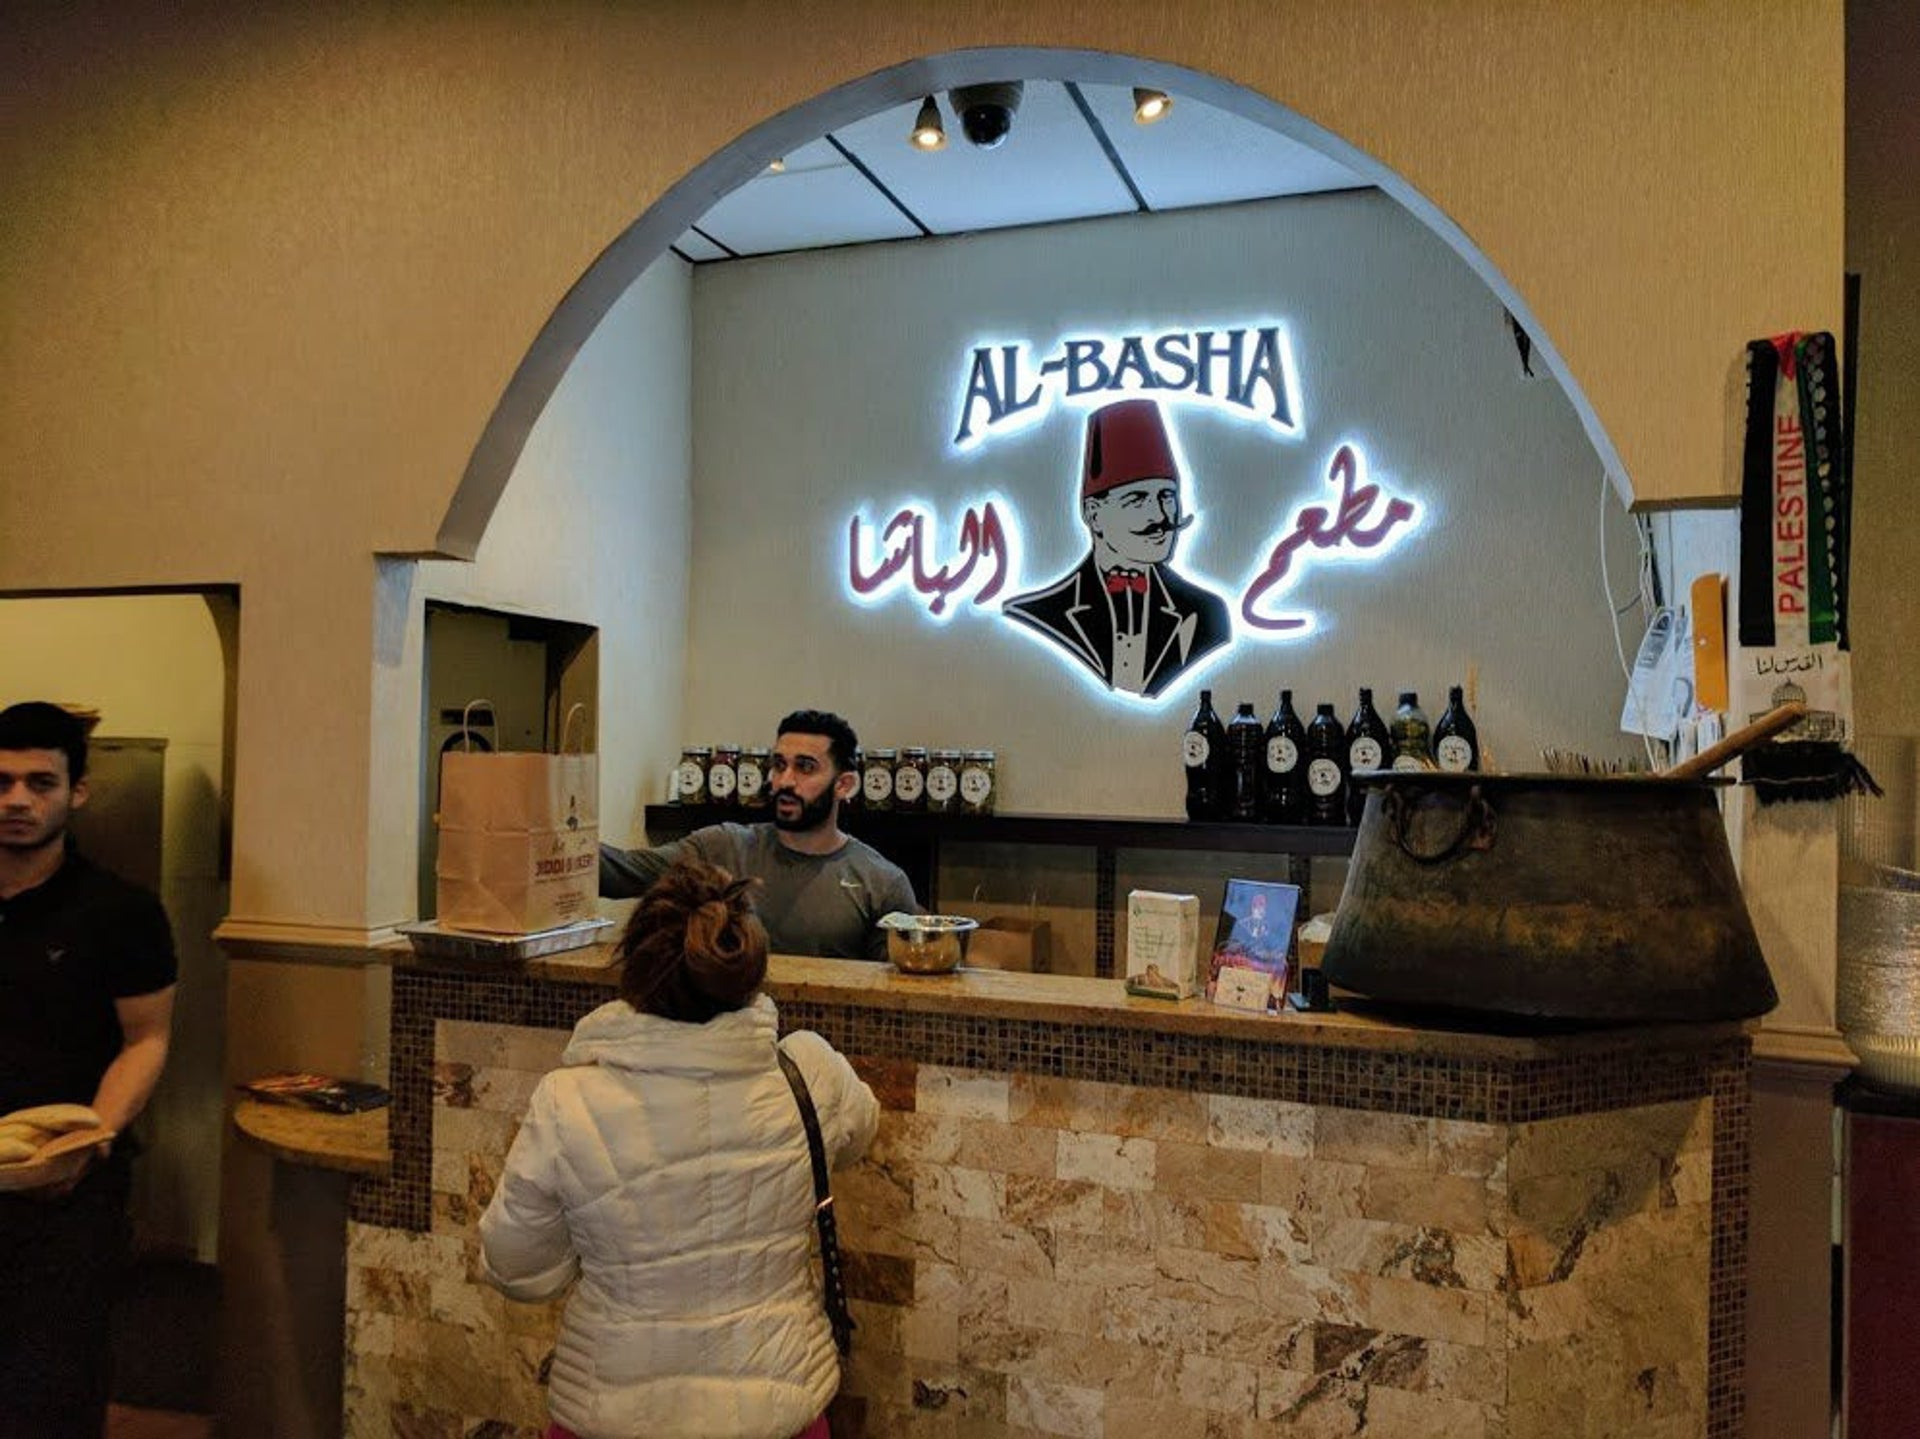 Al-Basha, most popular Palestinian-owned restaurant in Paterson, N.J.